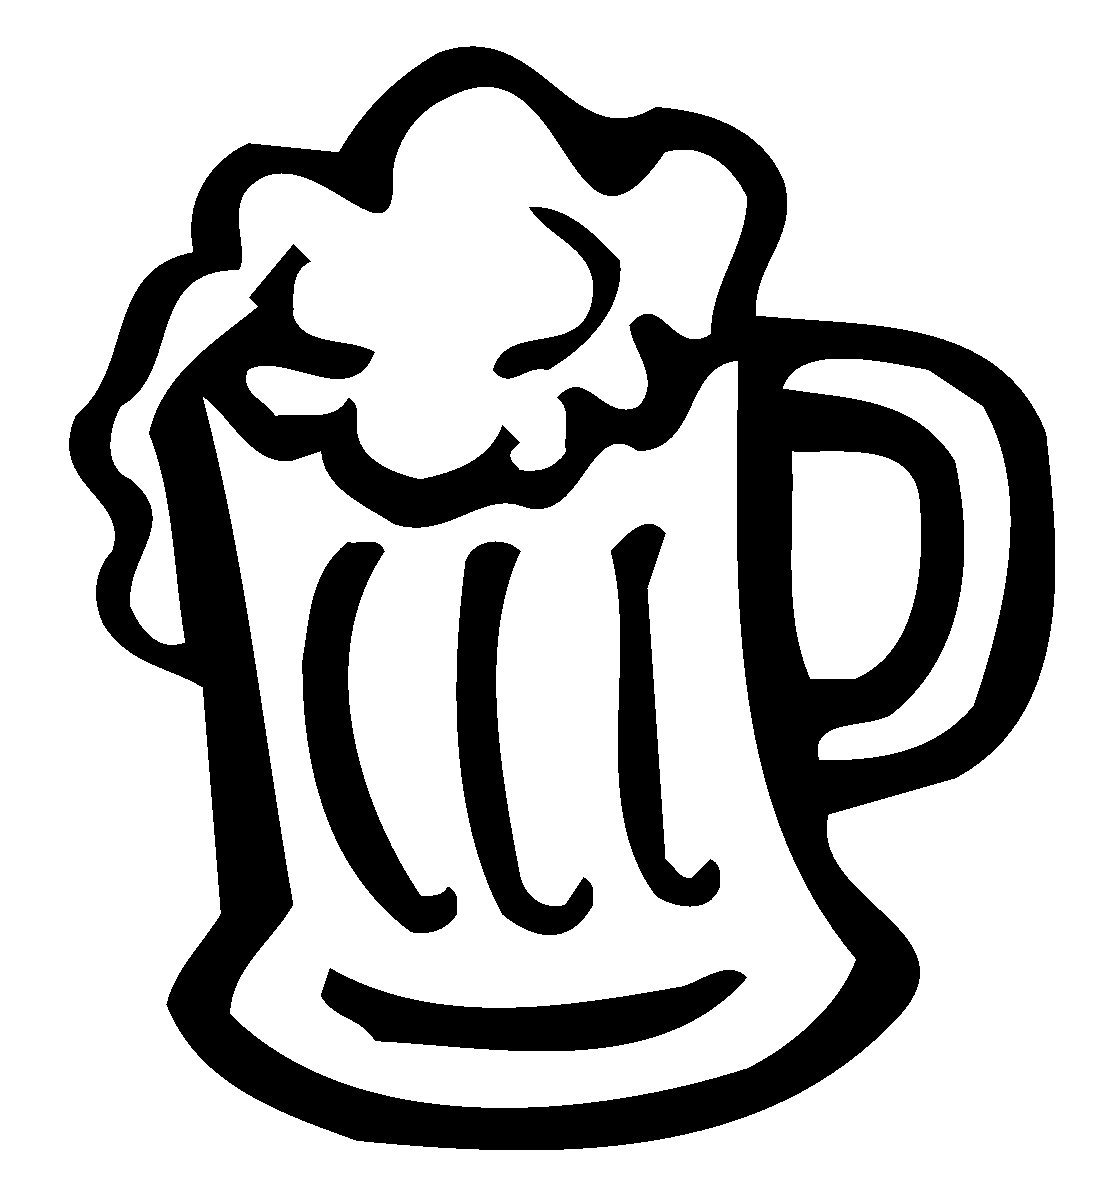 122 Beer Mugs free clipart.